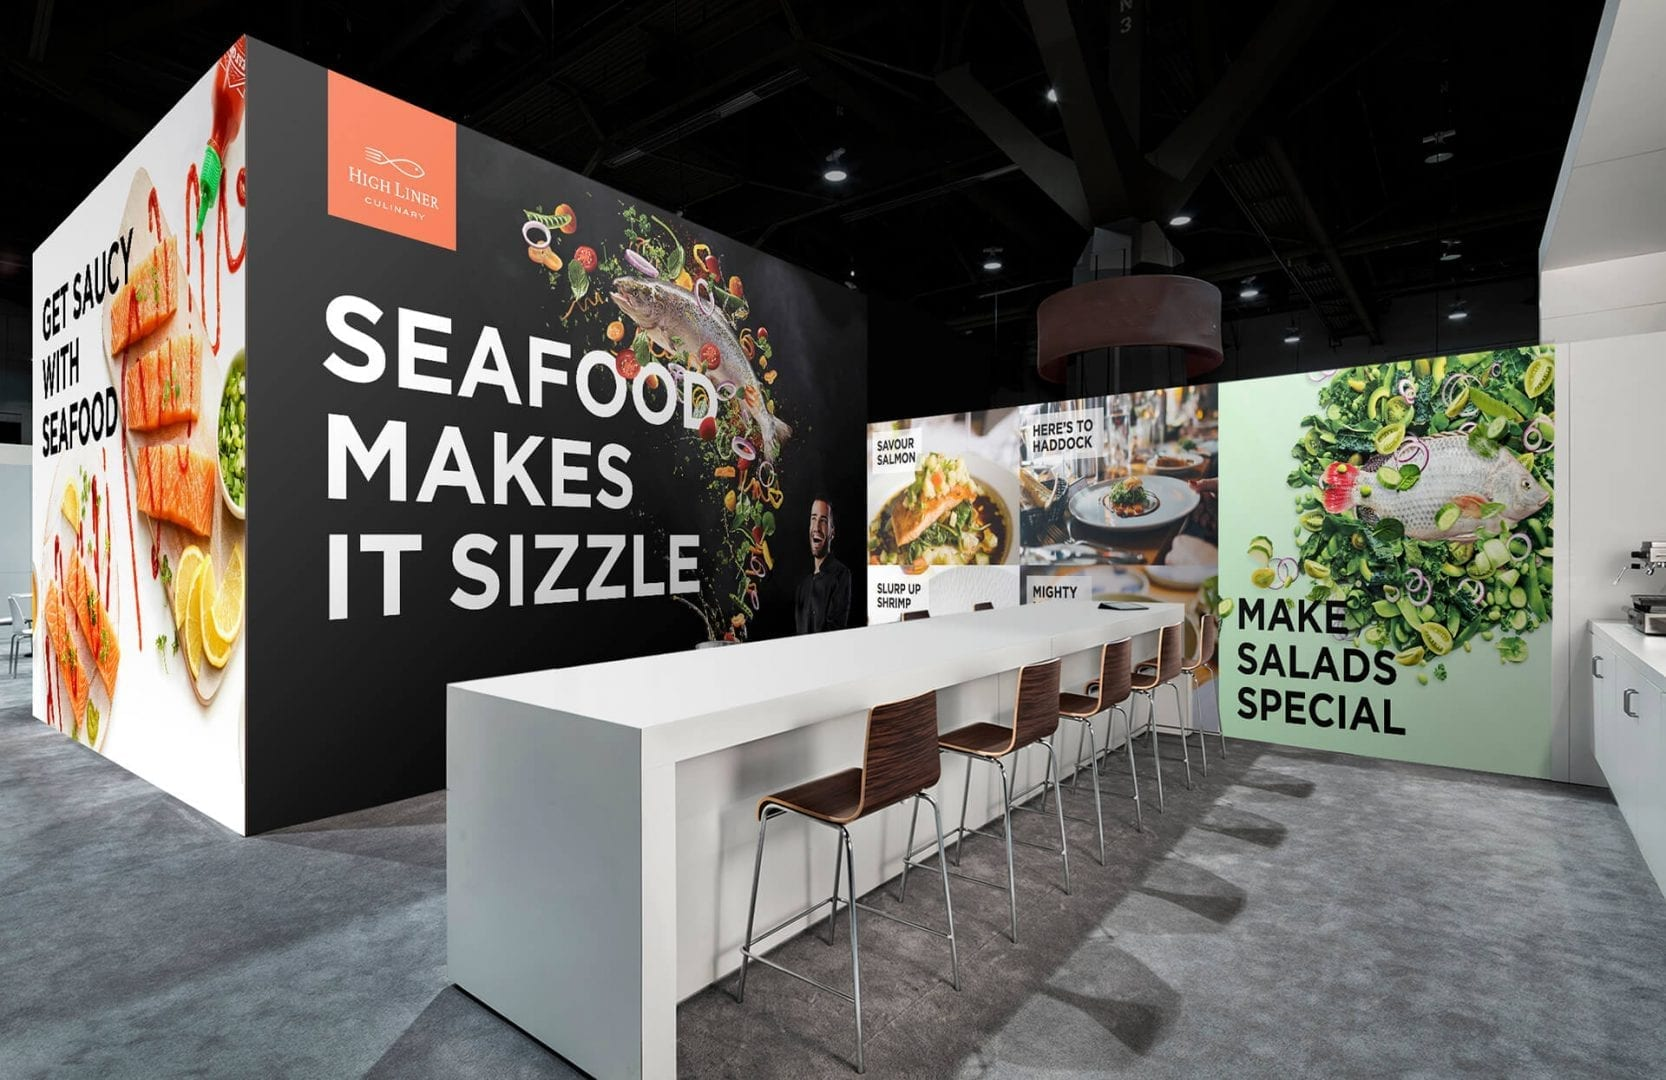 High Liner Culinary trade show booth design concept